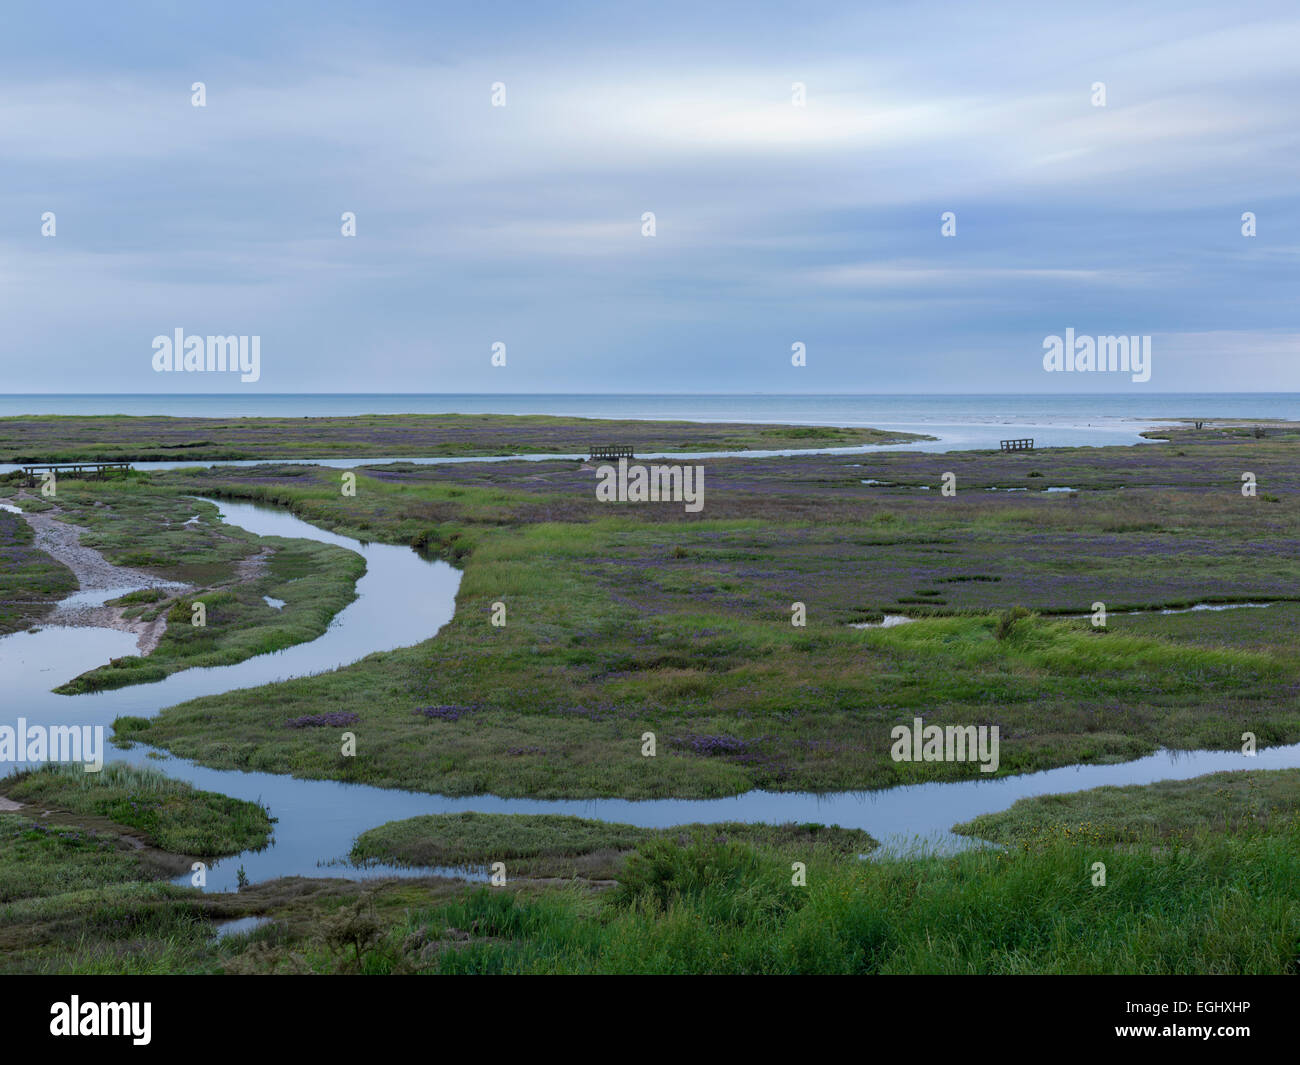 The tide coming in over the Saltmarshes at Stiffkey, North Norfolk, England Stock Photo